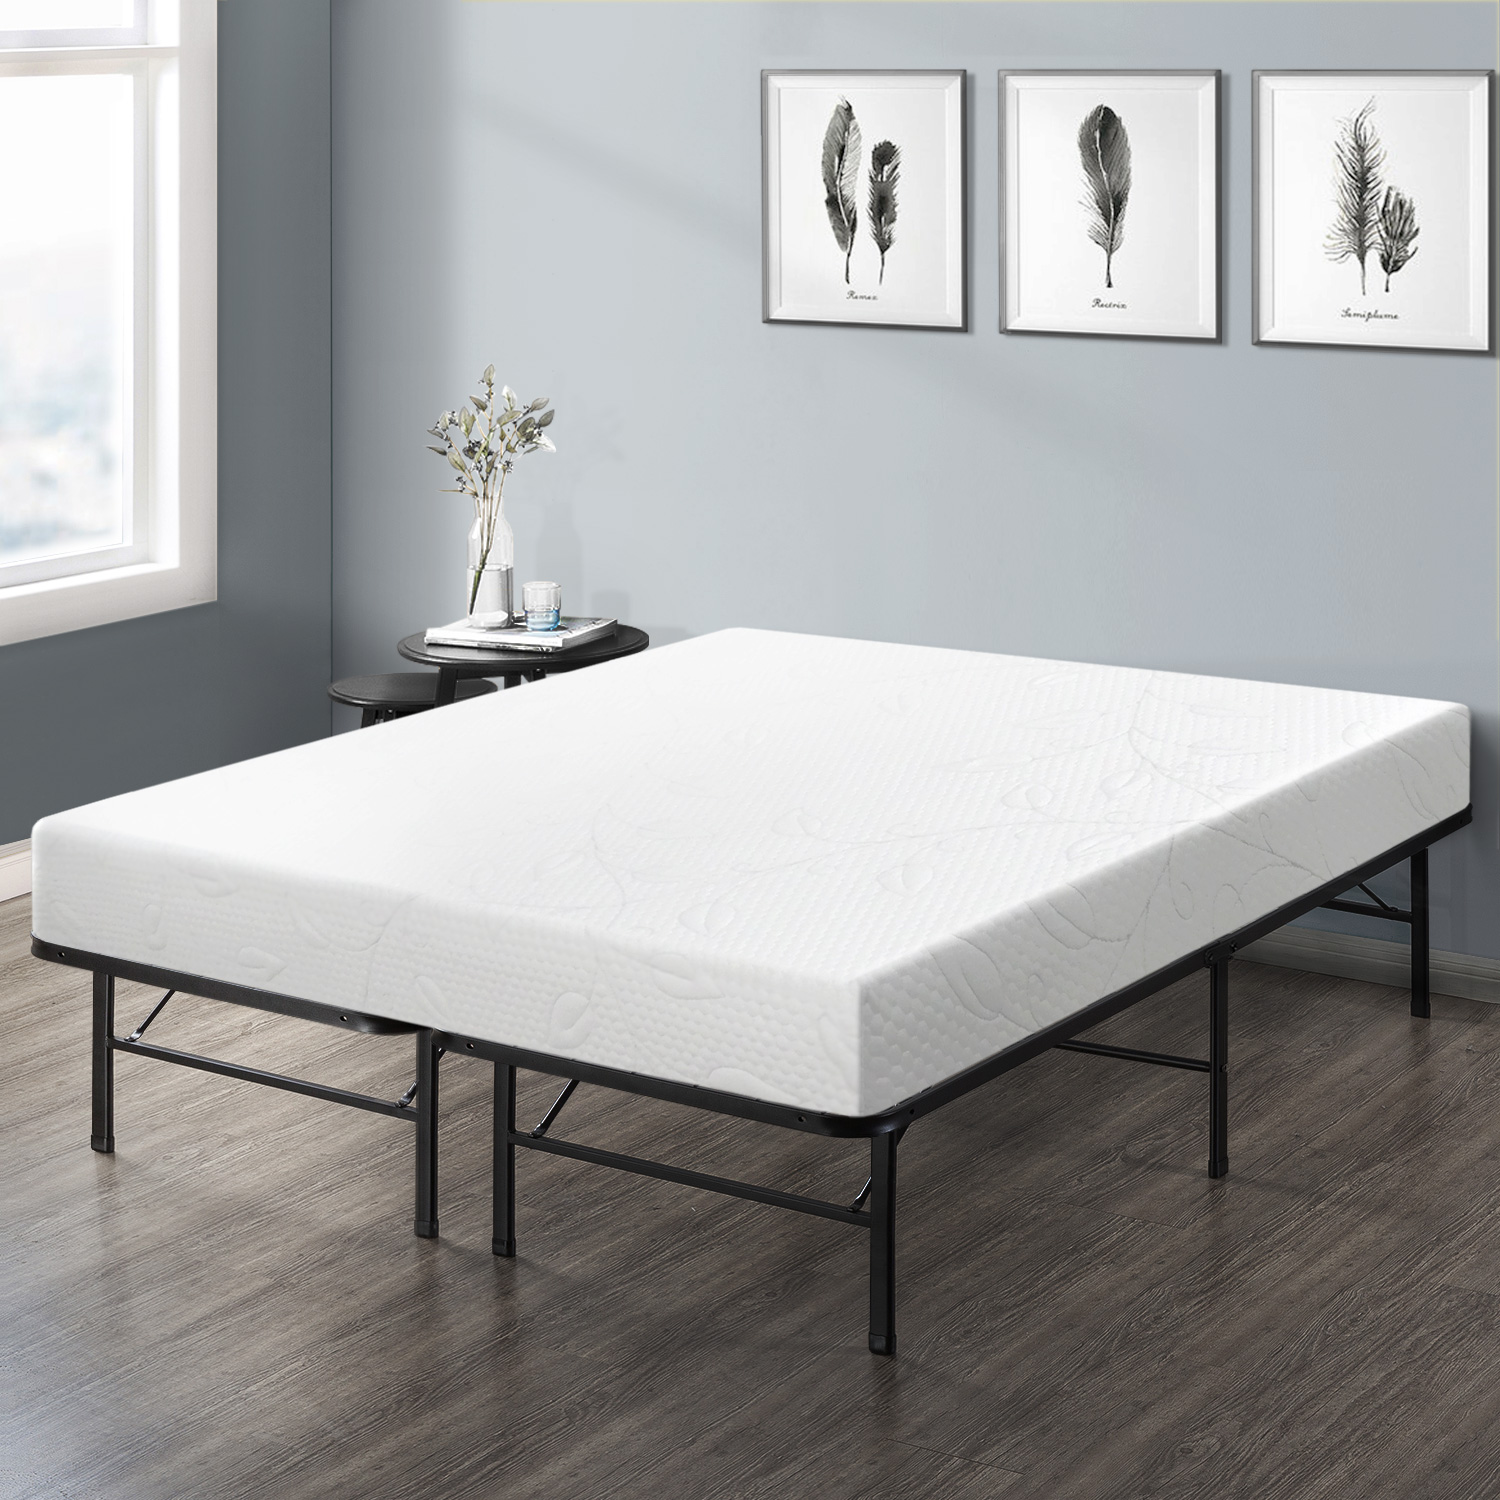 Best Foam Matress Best Price Mattress 8 Inch Air Flow Memory Foam Mattress And 14 Inch Steel Platform Bed Frame Set Twin